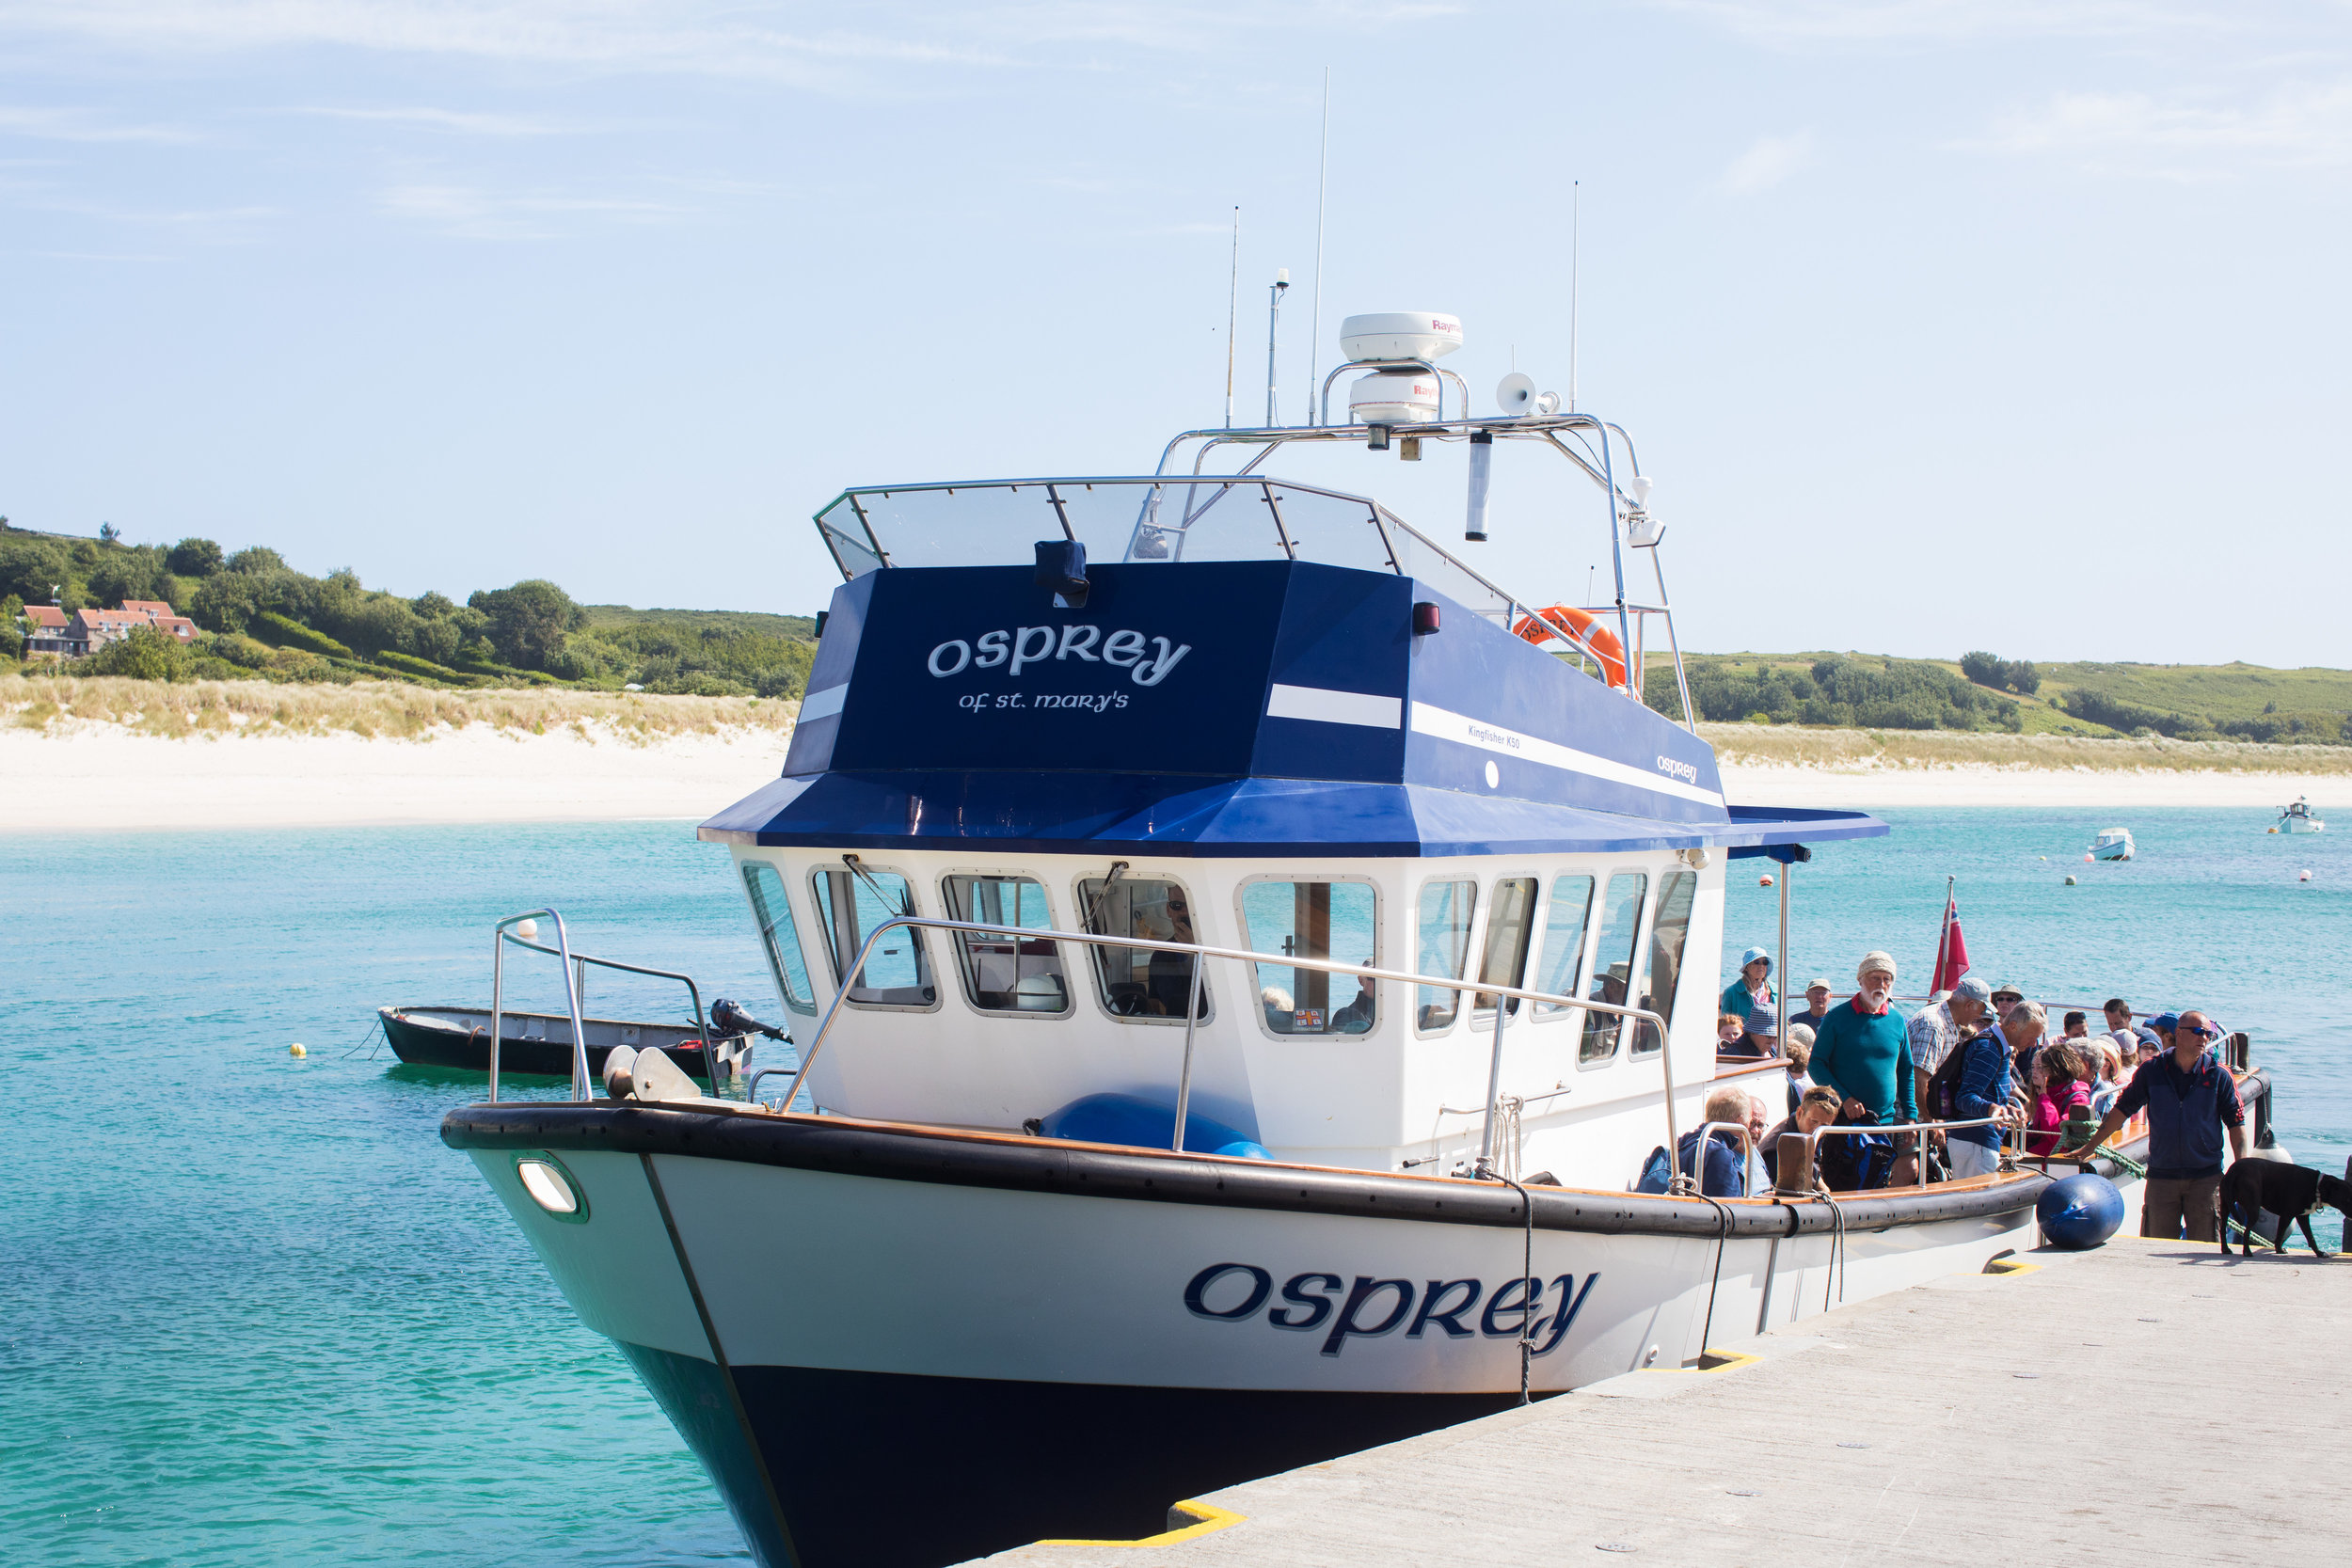 One of the many boats for island hopping on the Scilly Isles.